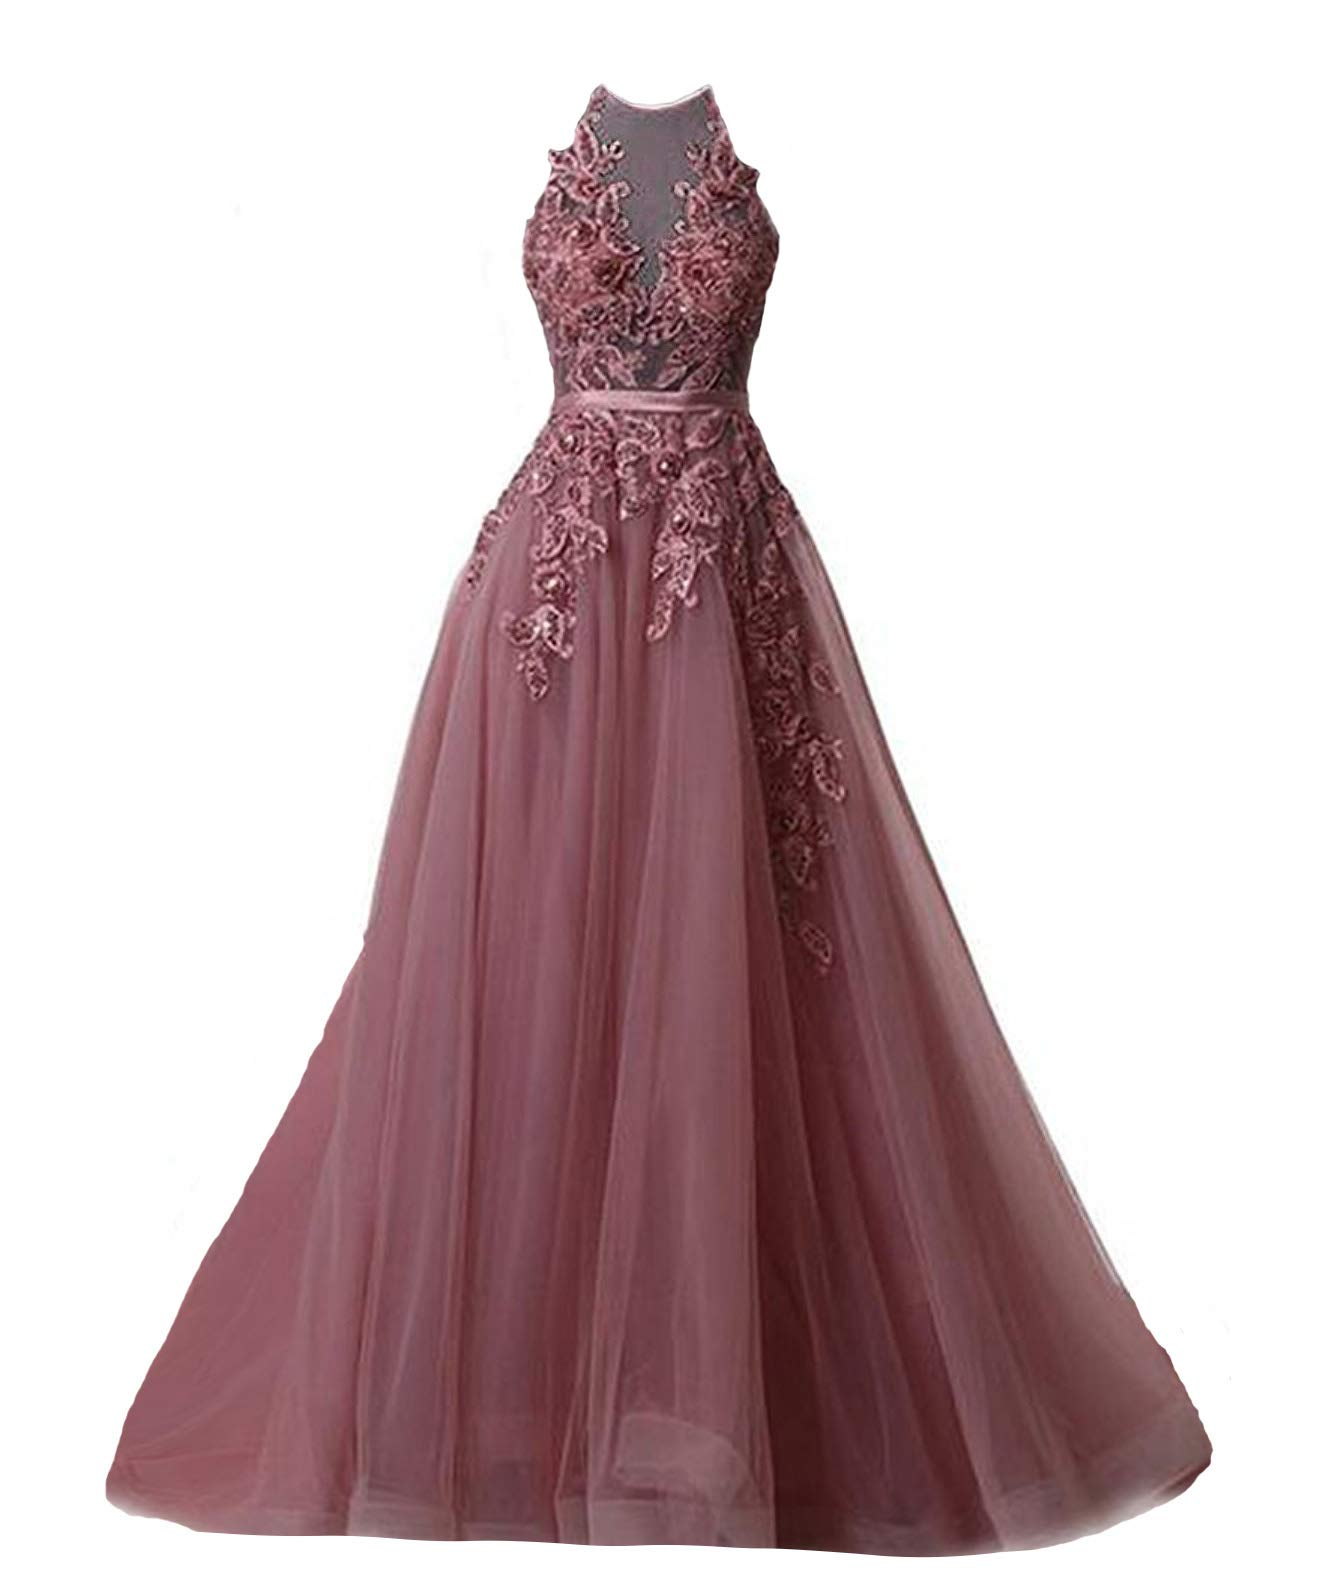 Prom Dresses - Women's Pretty Ball Gown Quinceanera Dress Ruffle Prom Dresses